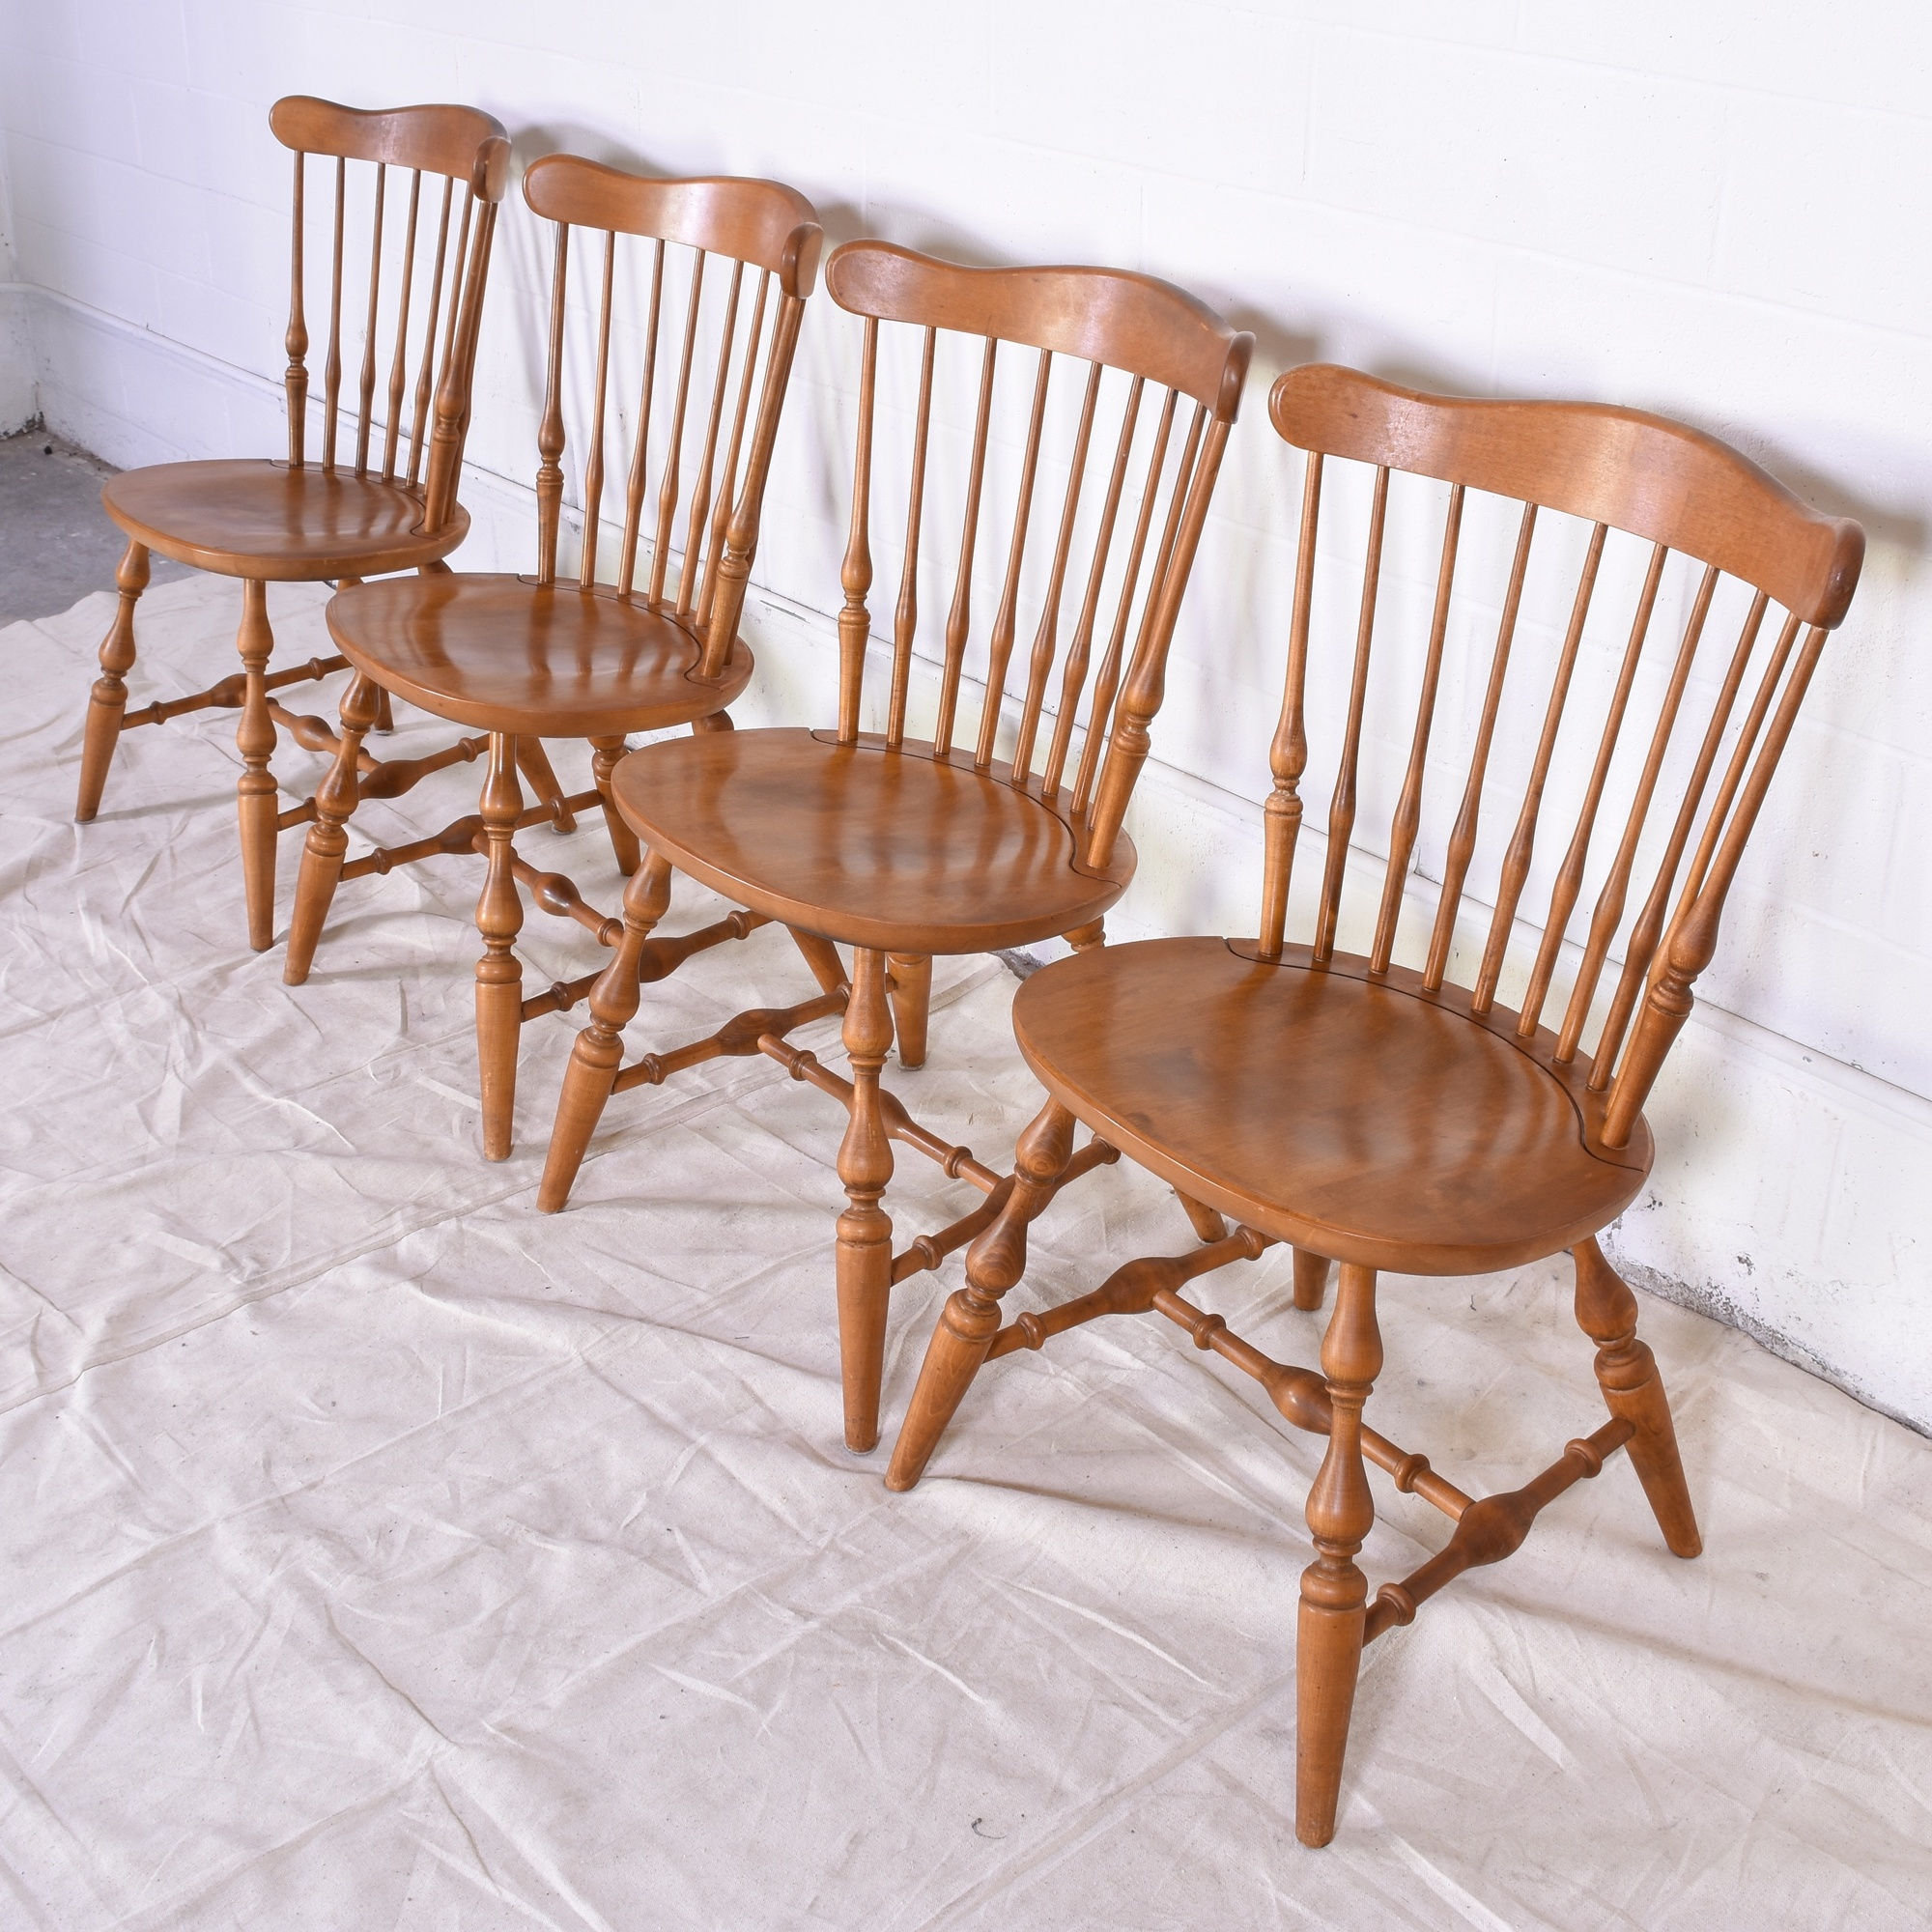 Quot Ethan Allen Quot Maple Dining Set W 4 Chairs Loveseat